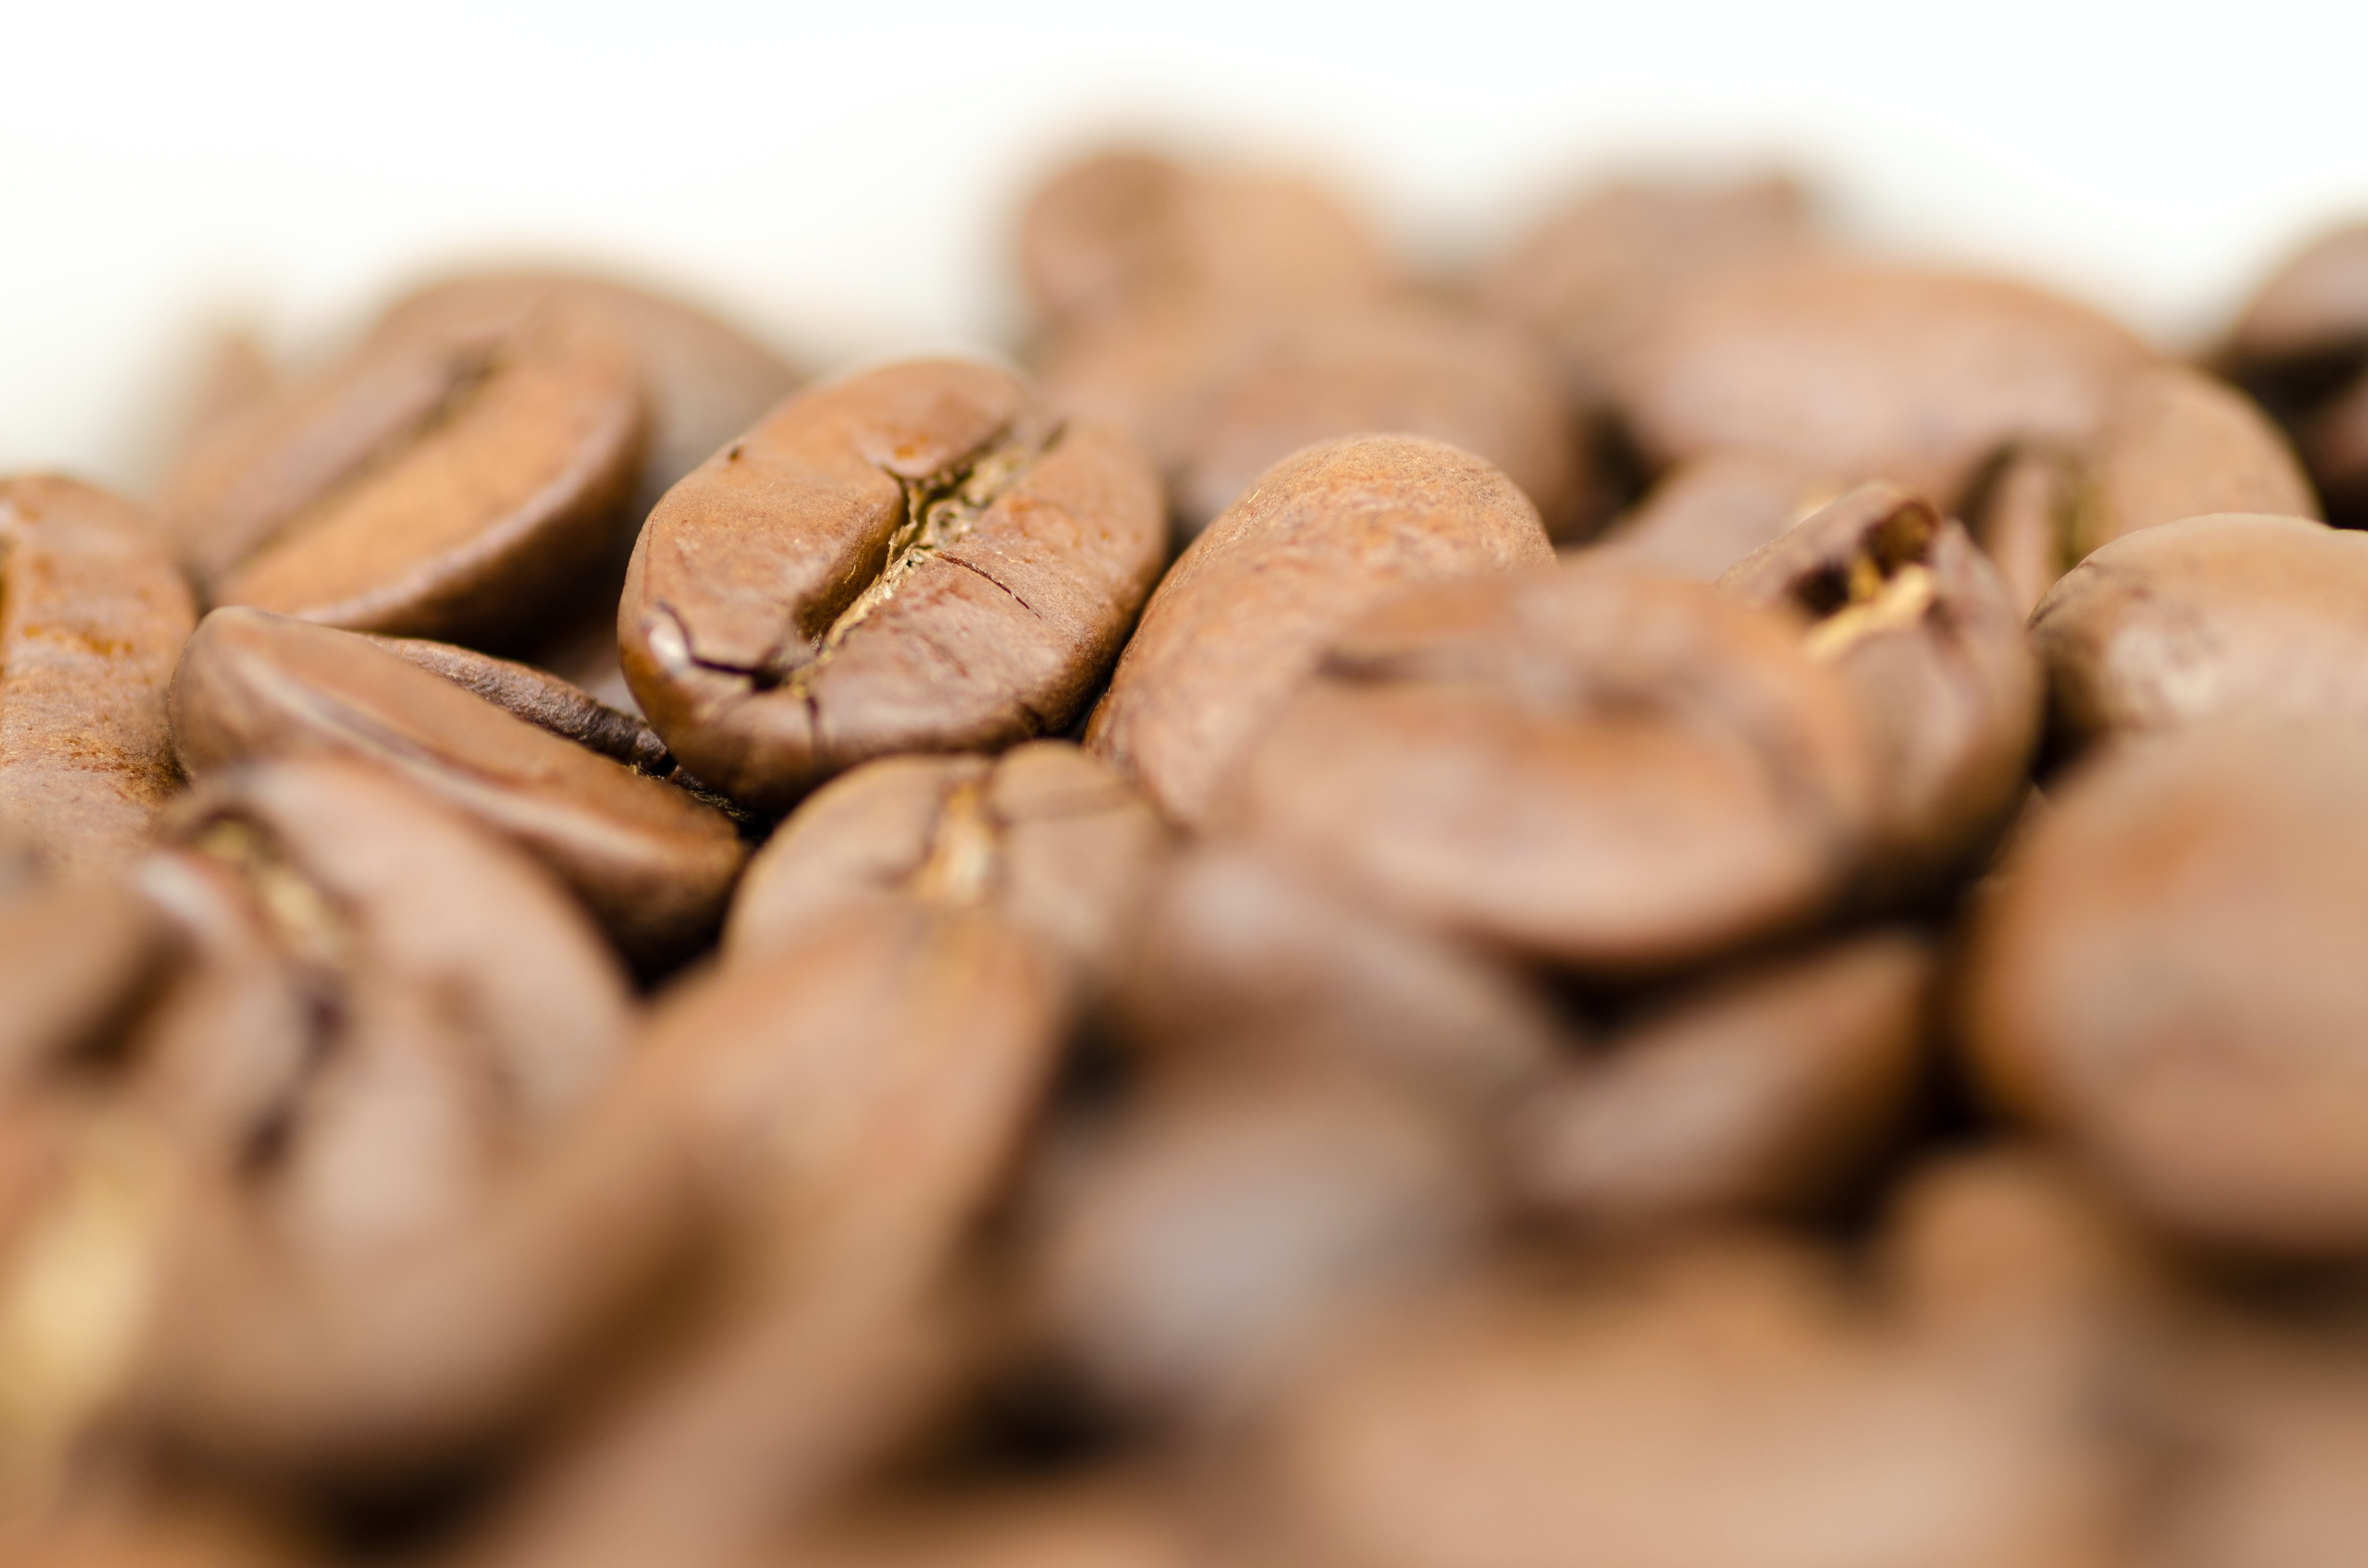 Closeup Photography of Coffee Beans